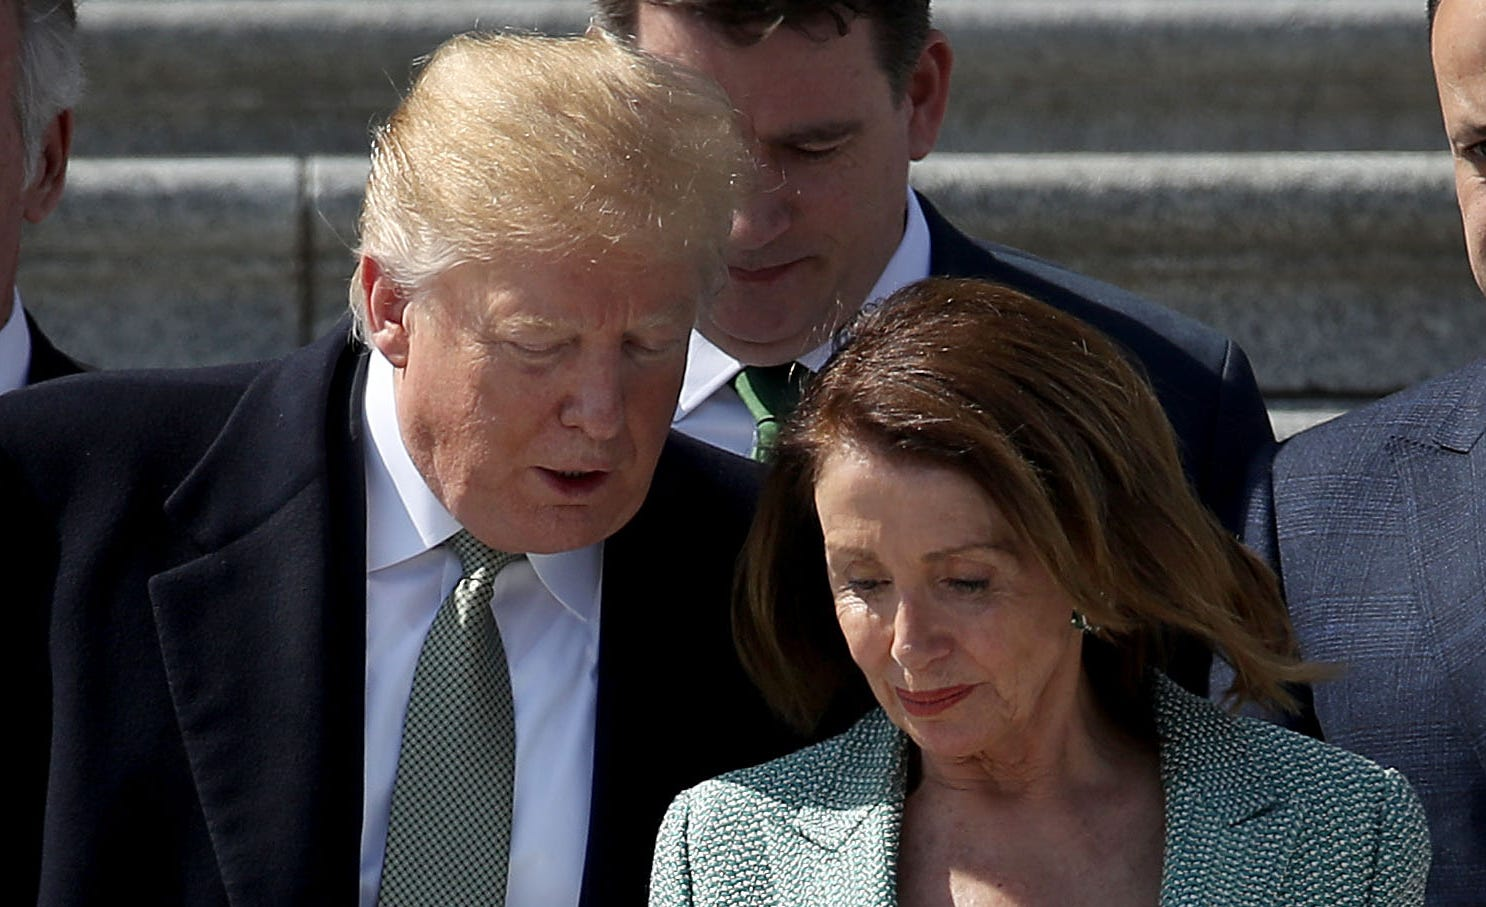 President Donald Trump confers with House Speaker Nancy Pelosi, D-Calif., while departing a St. Patrick's Day celebration at the Capitol in Washington, March 14, 2019.